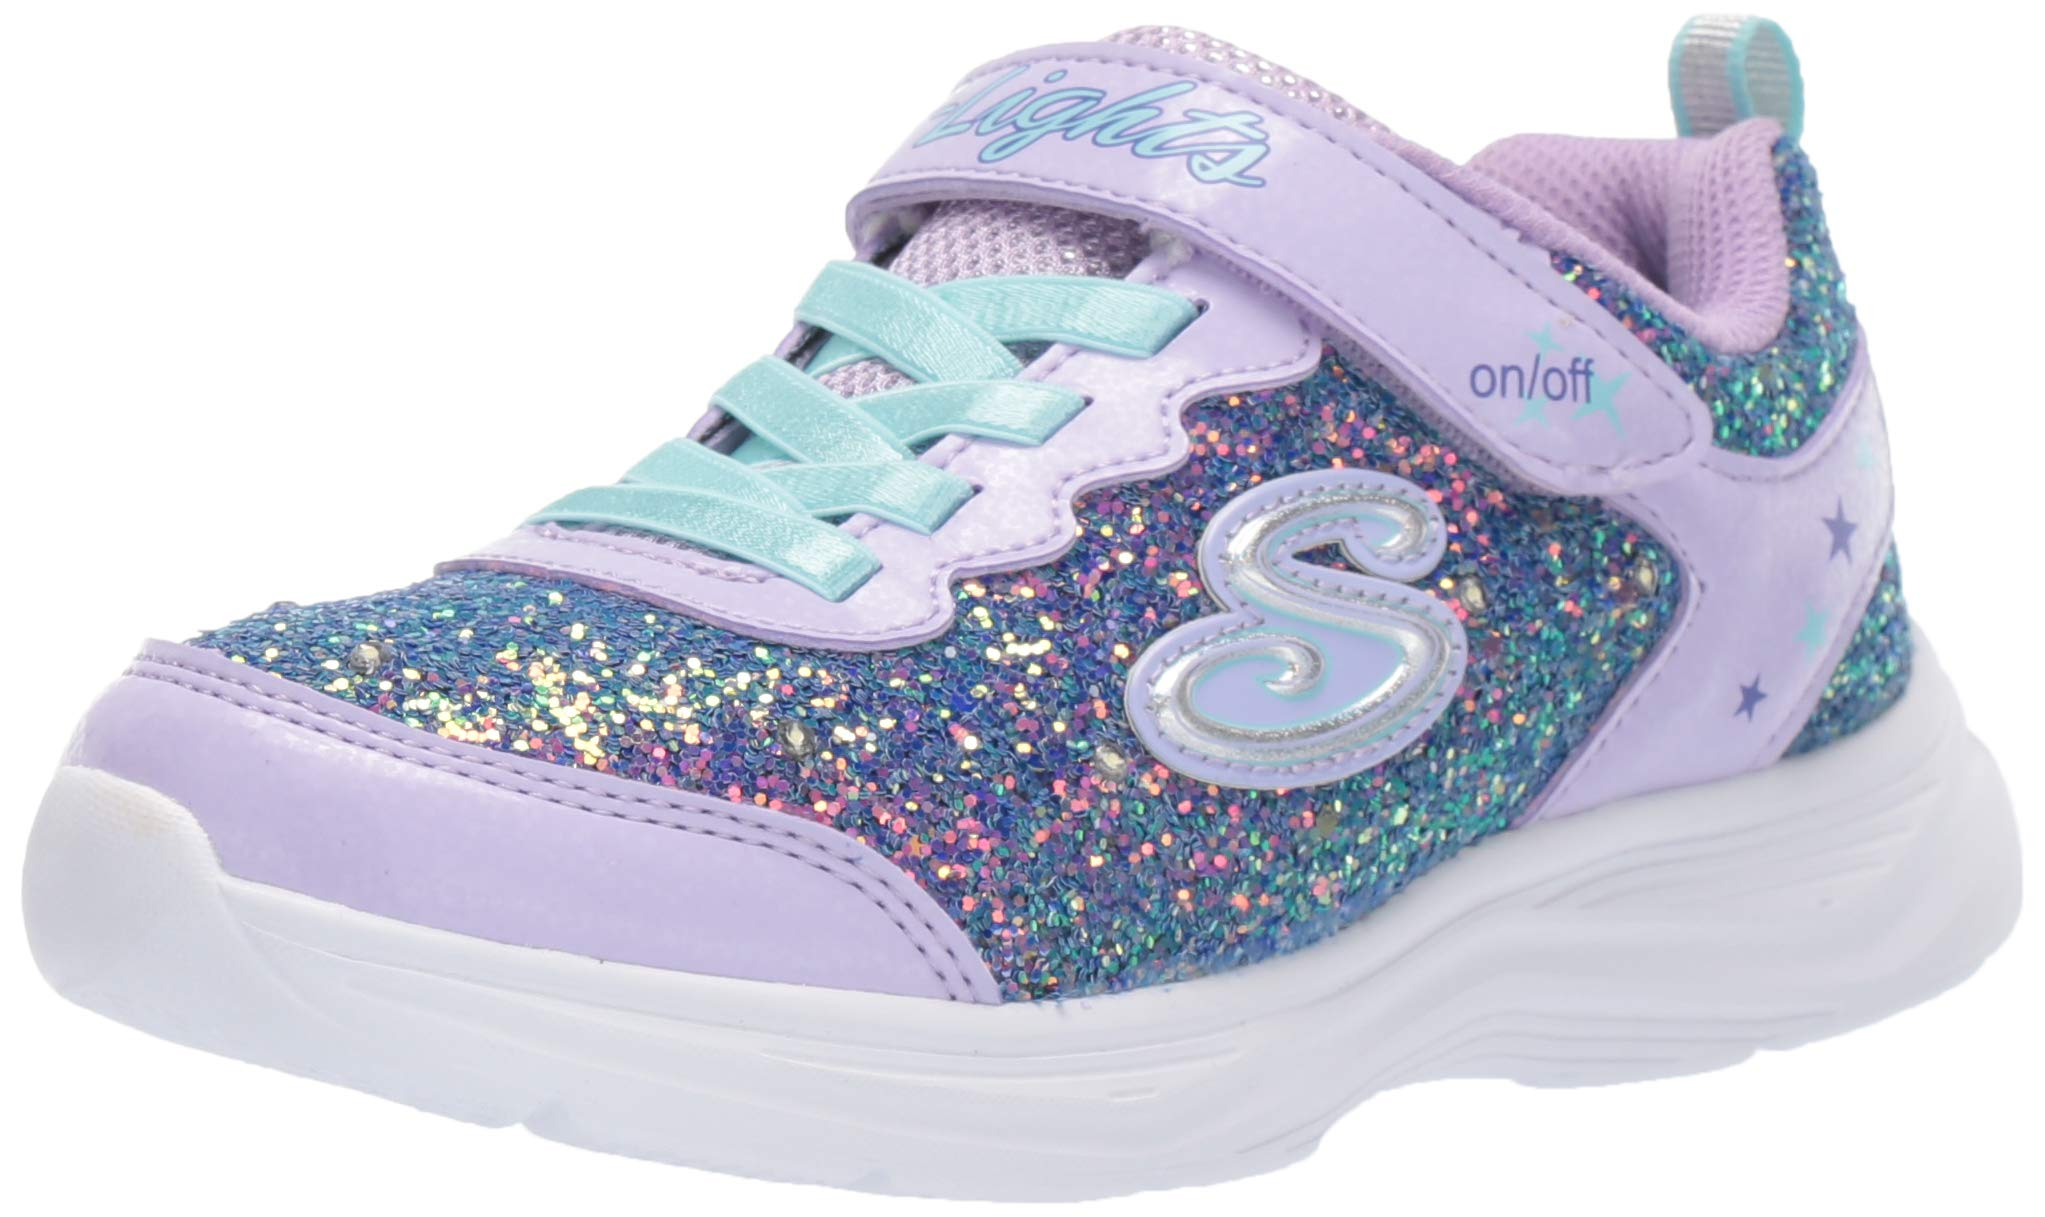 ویکالا · خرید  اصل اورجینال · خرید از آمازون · Skechers Kids Girls' Glimmer Kicks Sneaker, Lavender/Aqua, 11 Medium US Little Kid wekala · ویکالا